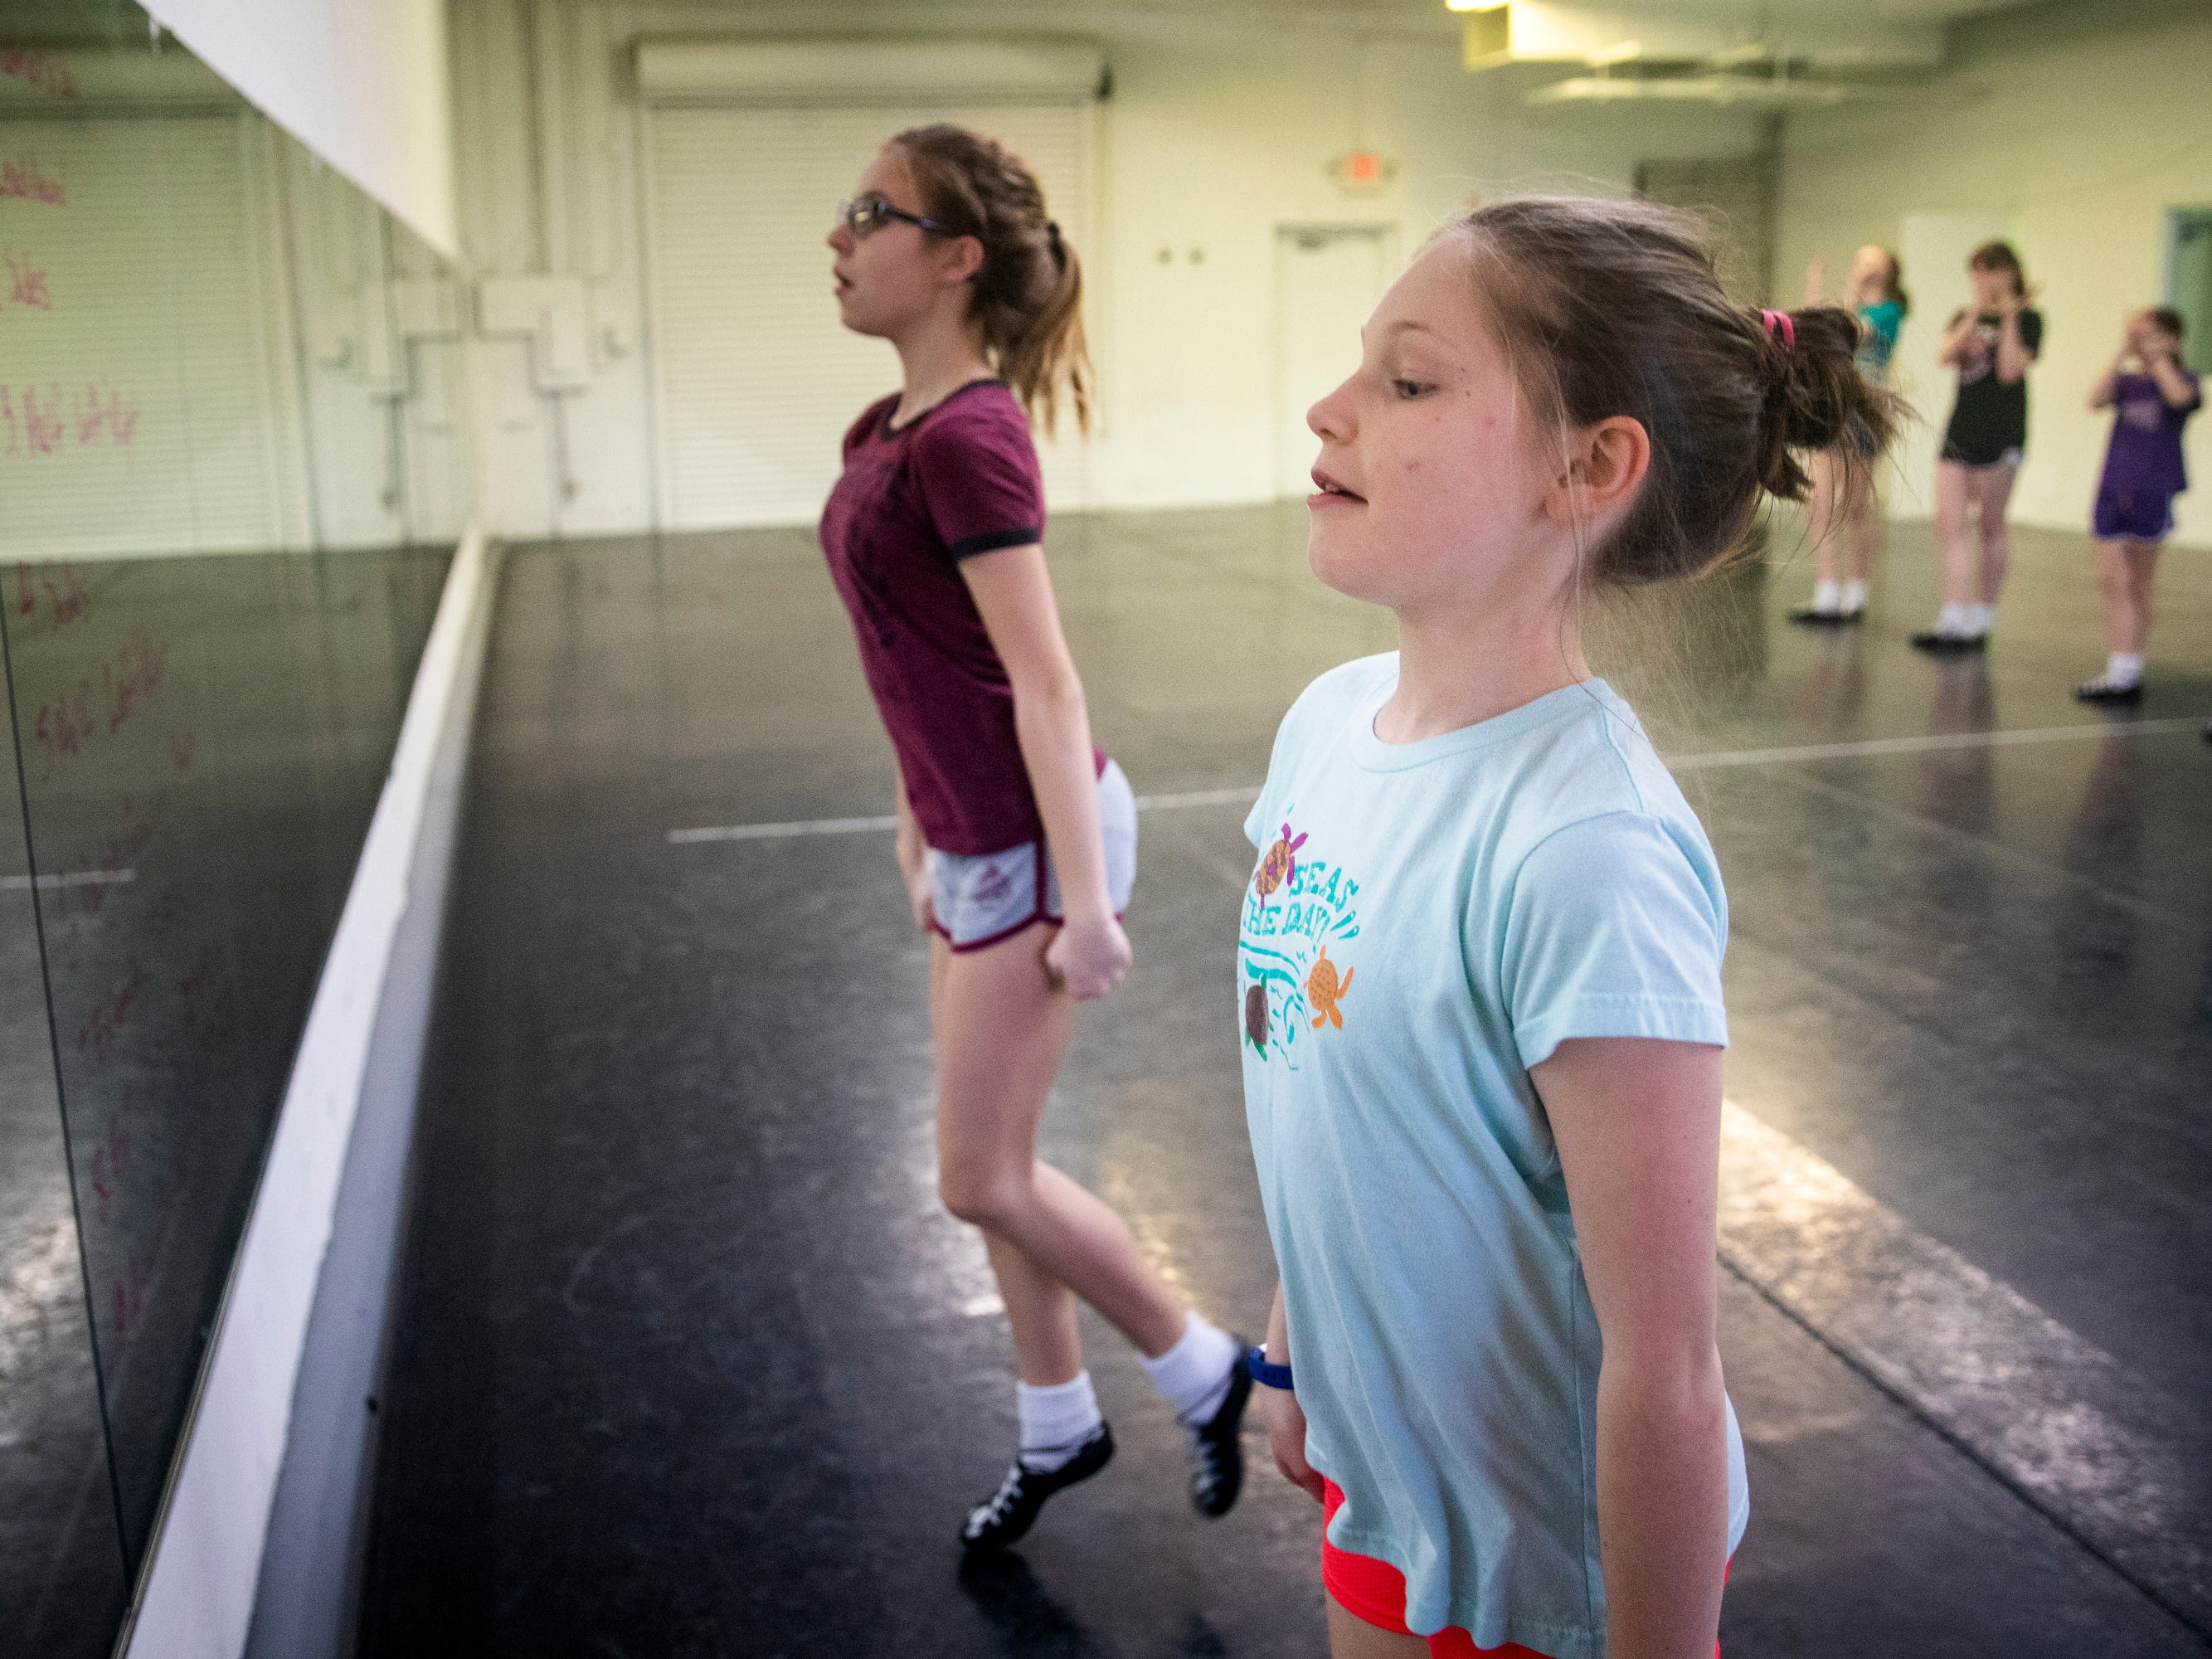 Emily Bolan, 10, and Grace Arnold, 14, practice for the 2019 Cincinnati St. Patrick's Day Parade at the Erickson Academy of Irish Dance studio in Linwood Thursday, March 14, 2019.